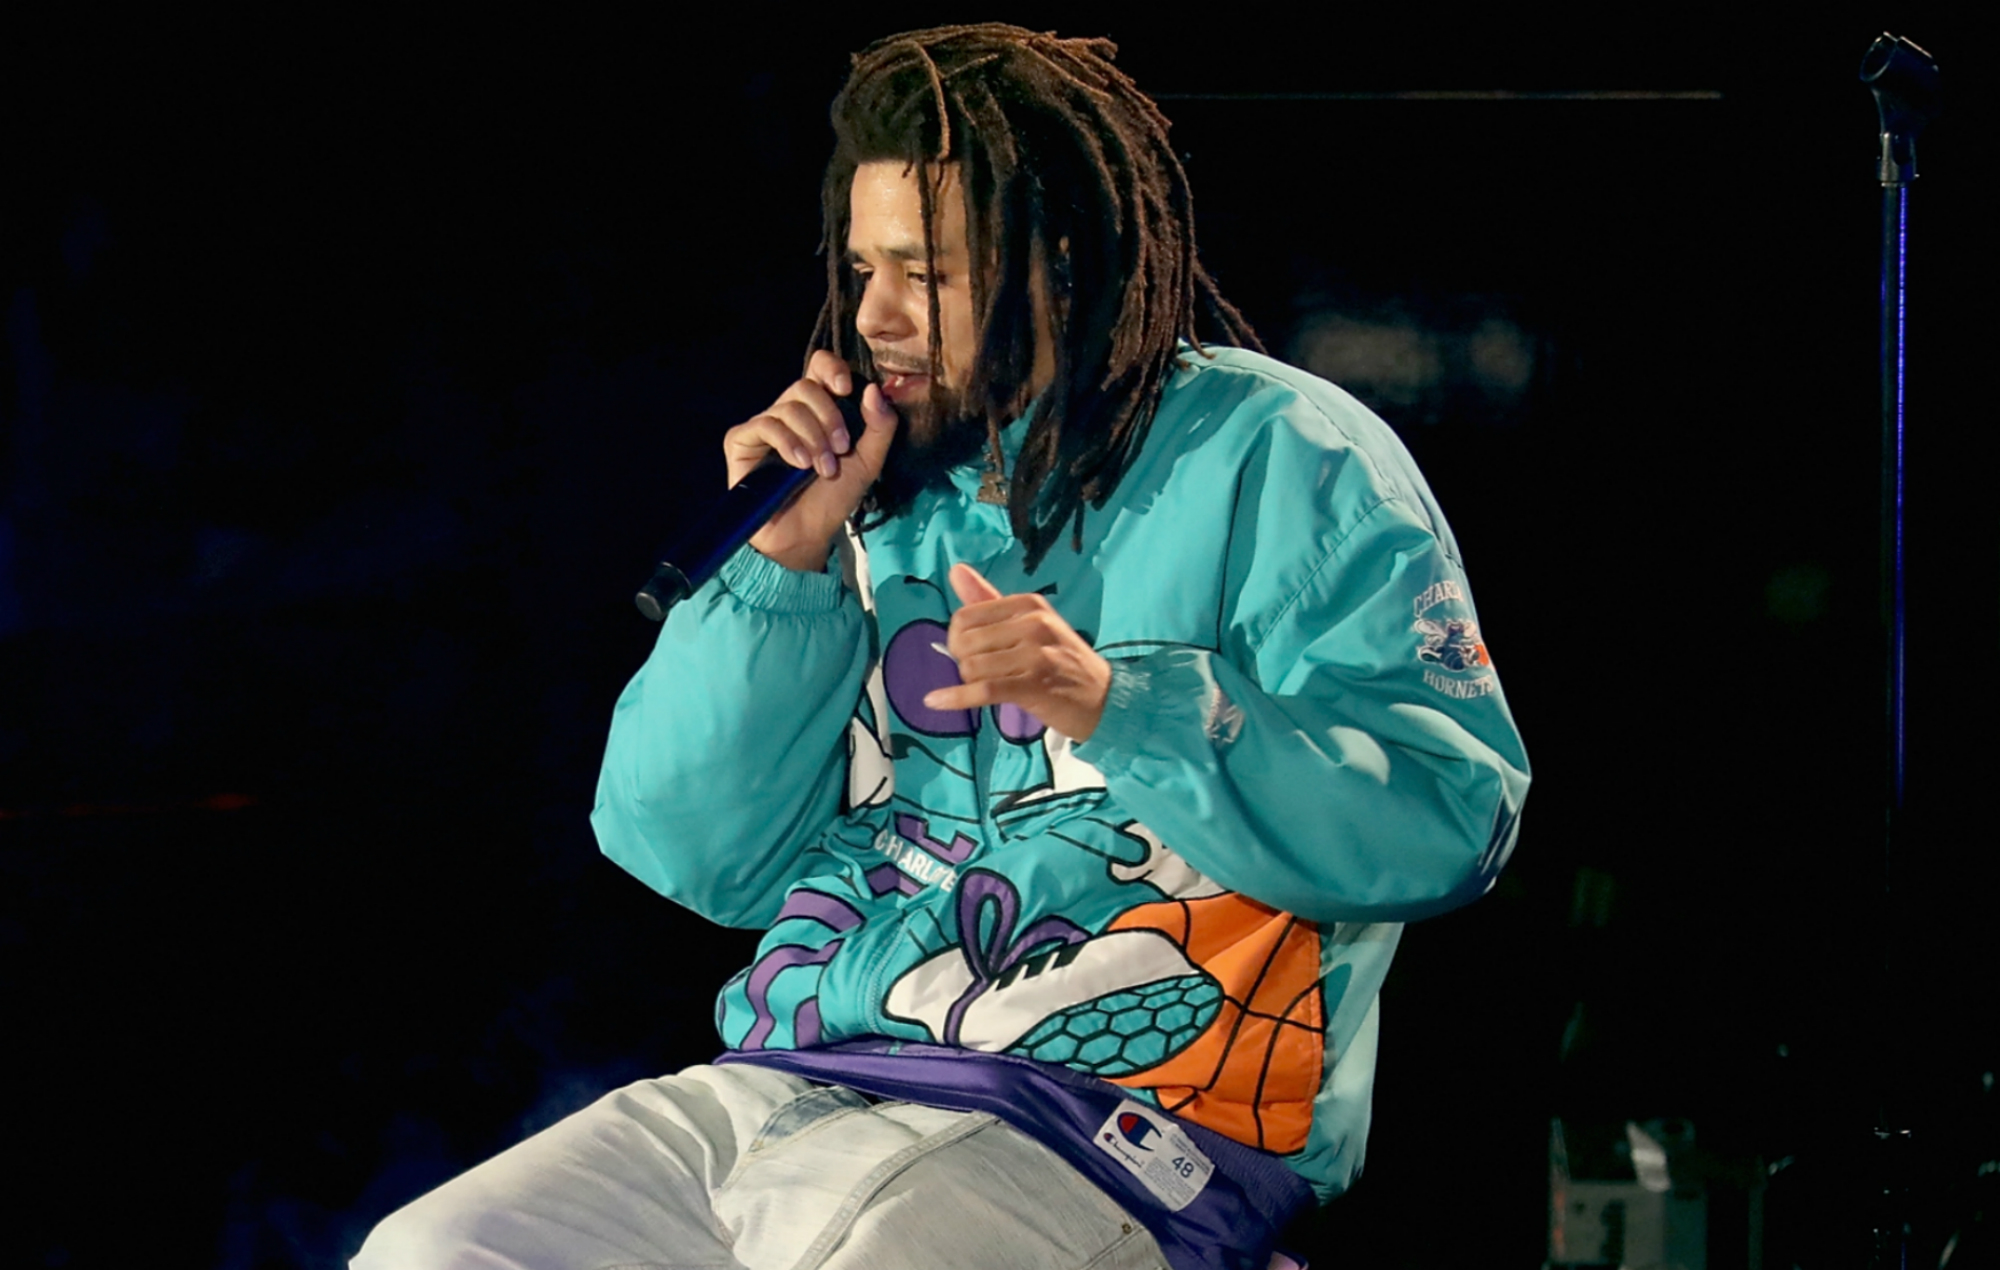 J. Cole reveals tracklist and producers for new album 'The Off-Season'